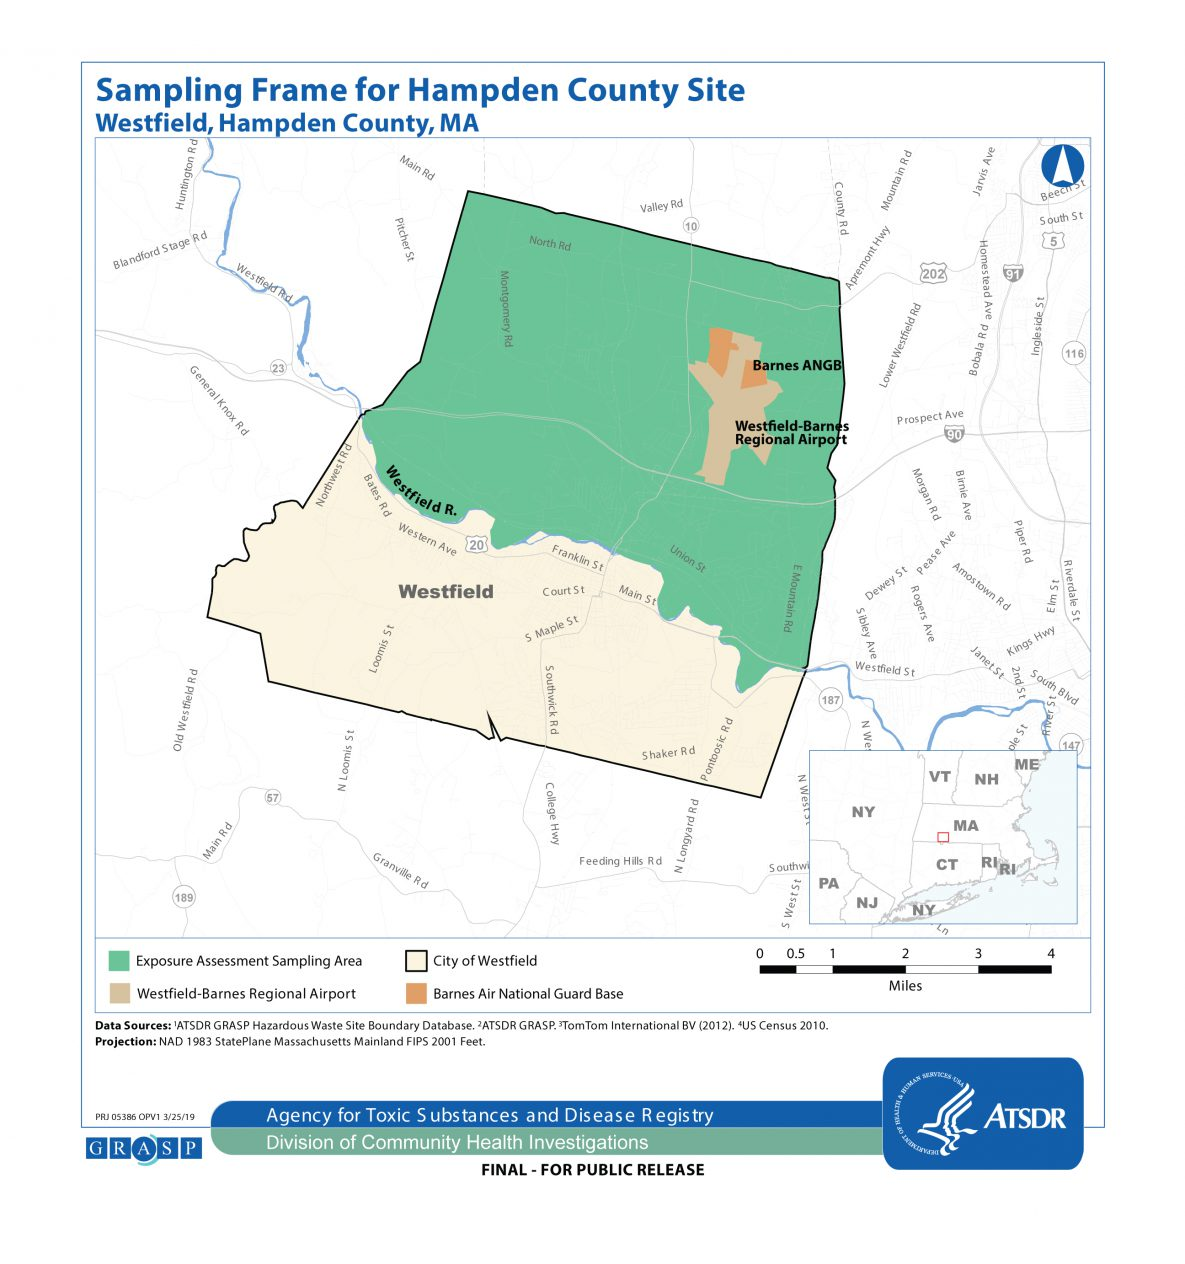 The map shows the sampling area where the exposure assessment will occur. It focuses on an area where residential tap water PFOA and/or PFOS concentrations were above federal or state guidelines.  The boundary of this area represents Westfield residents who live north of the Westfield River and receive water from the Westfield Water Department. The map also shows the location of the Barnes Air National Guard Base.